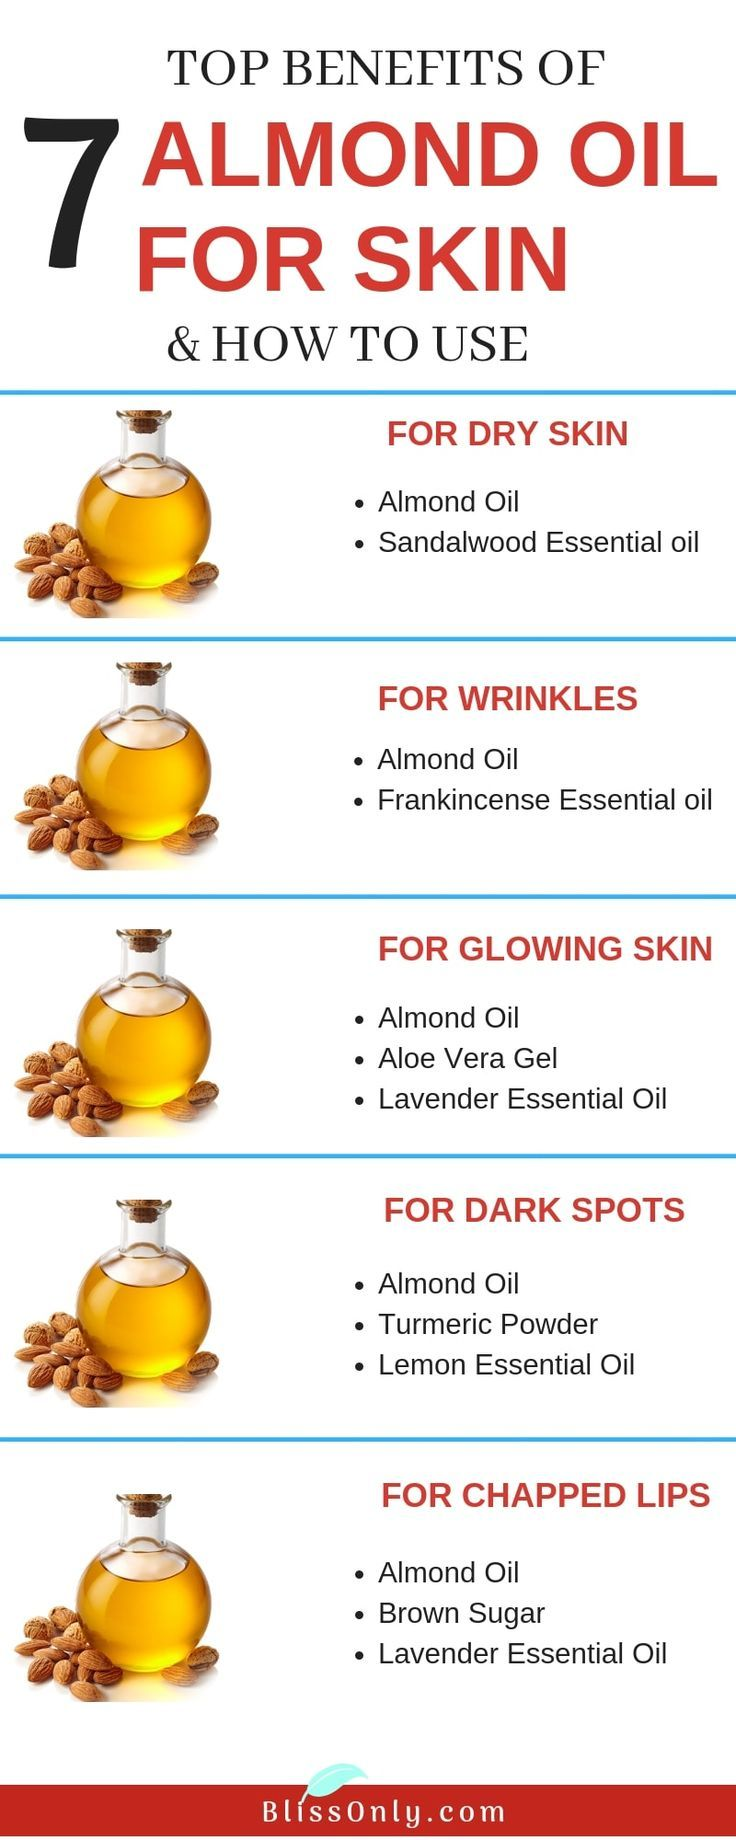 Top 7 Benefits Of Almond Oil For Skin And How To Use ...